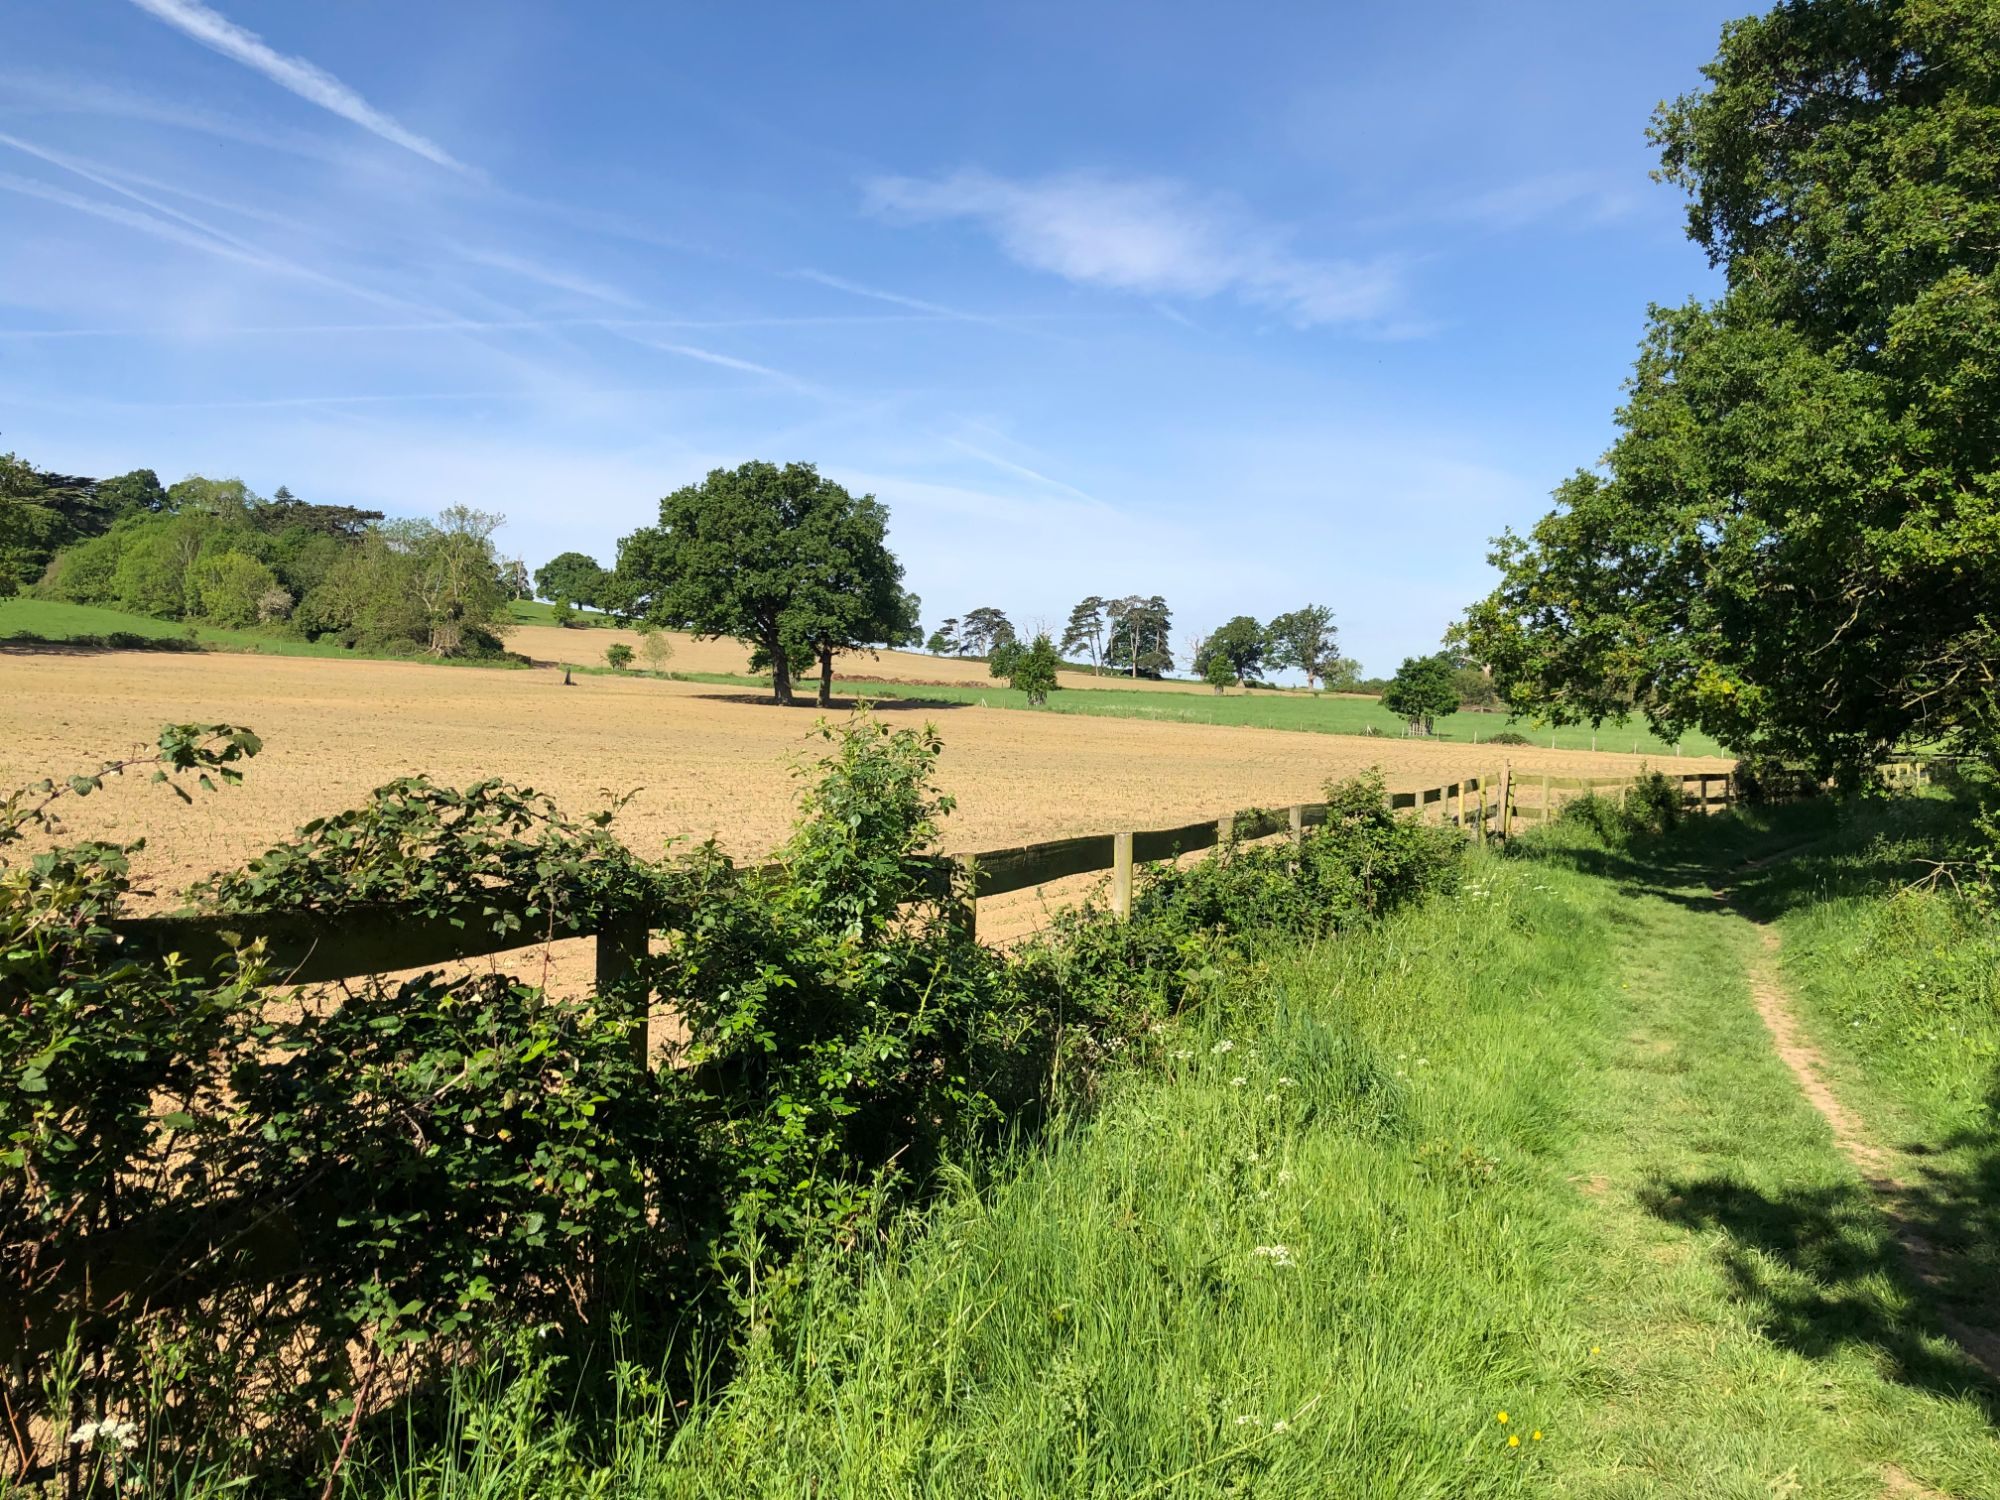 Free stock photo British farmers field peaceful nature country public footpath summer sunny